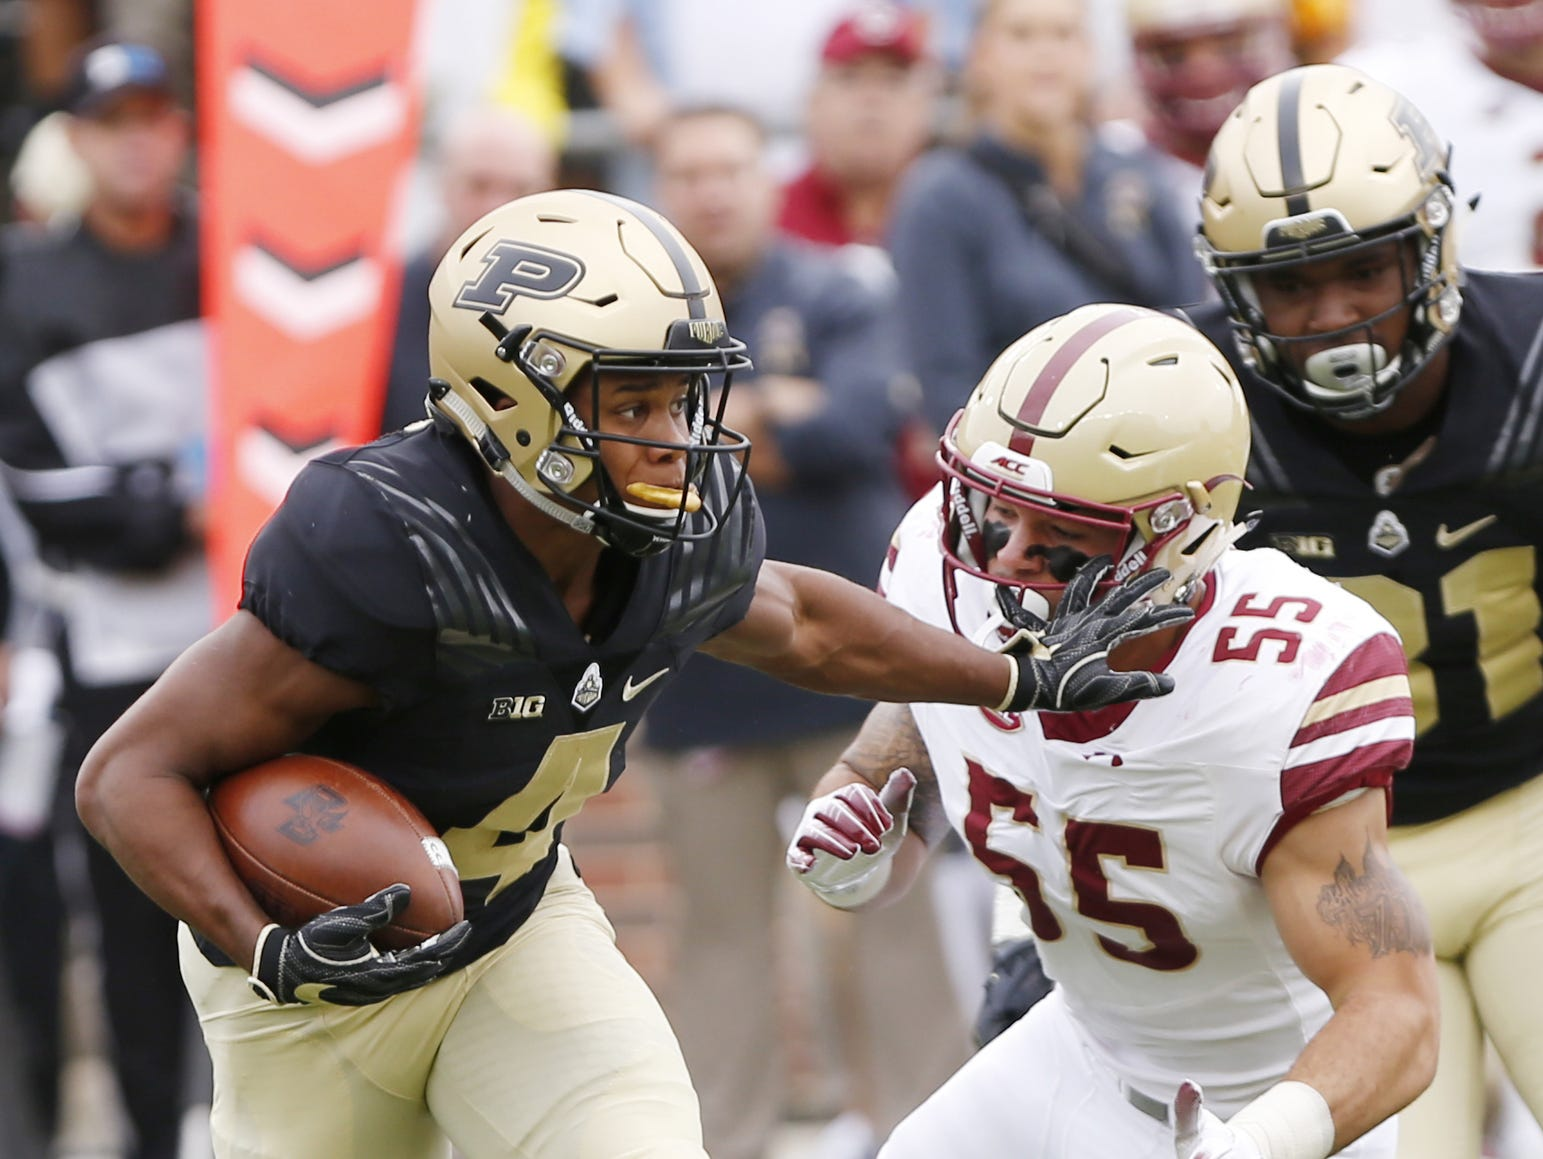 Rondale Moore of Purdue with a stiff arm to Isaiah McDuffie of Boston College on a kick return in the first half Saturday, September 22, 2018, in Ross-Ade Stadium. Purdue defeated Boston College 30-13.